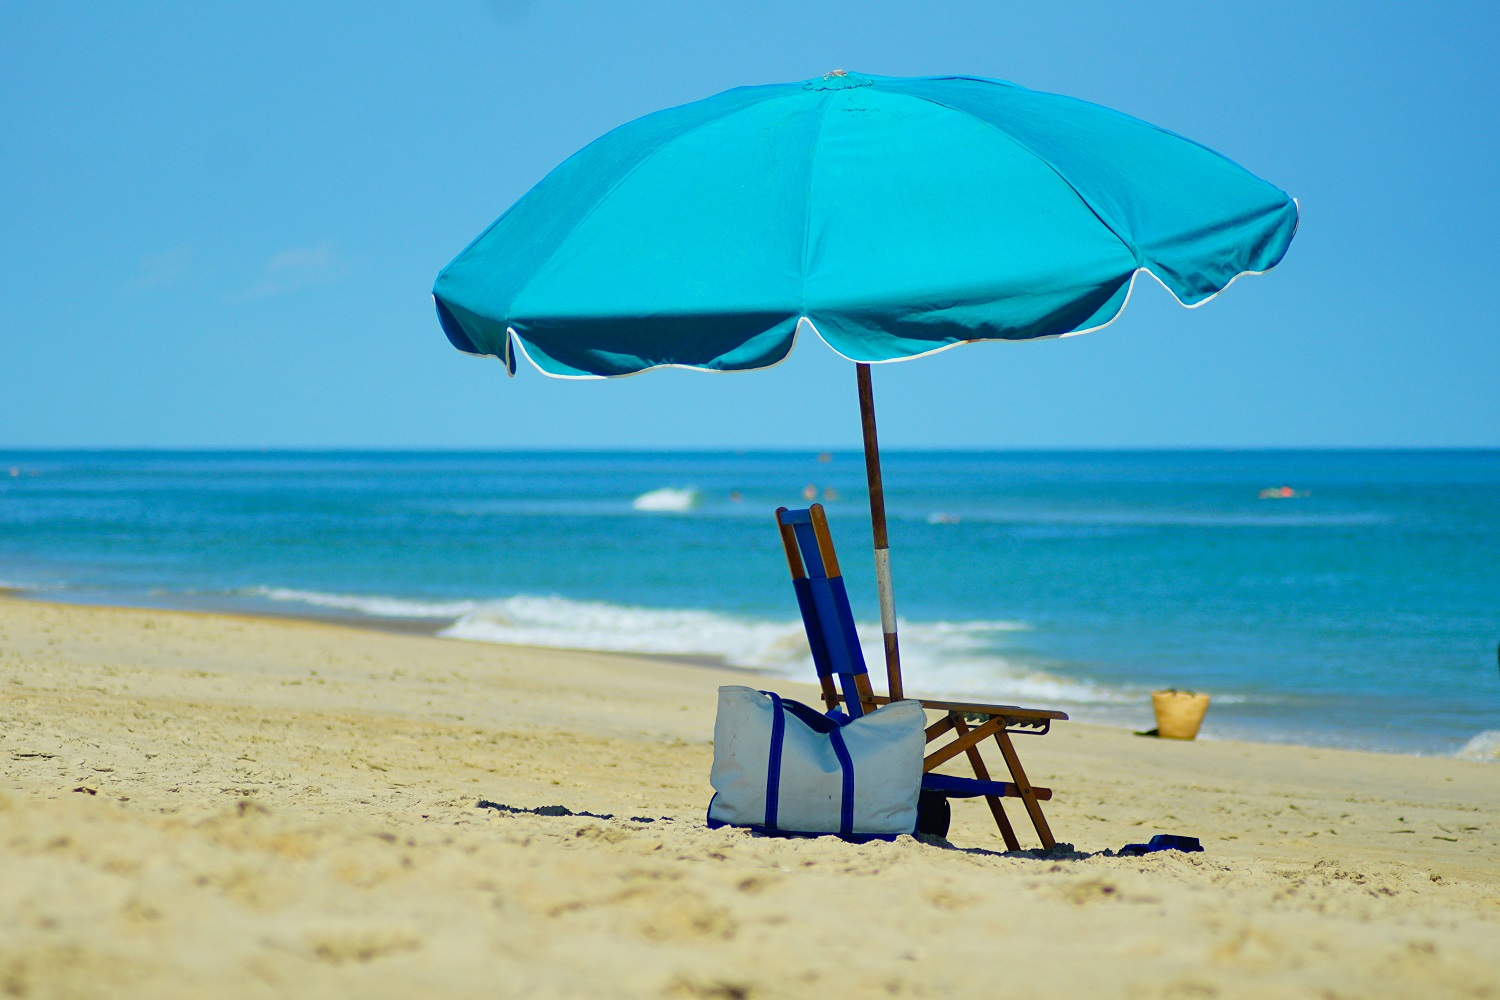 Umbrella at the beach, one of the best ways to stay cool in Lowcountry summer